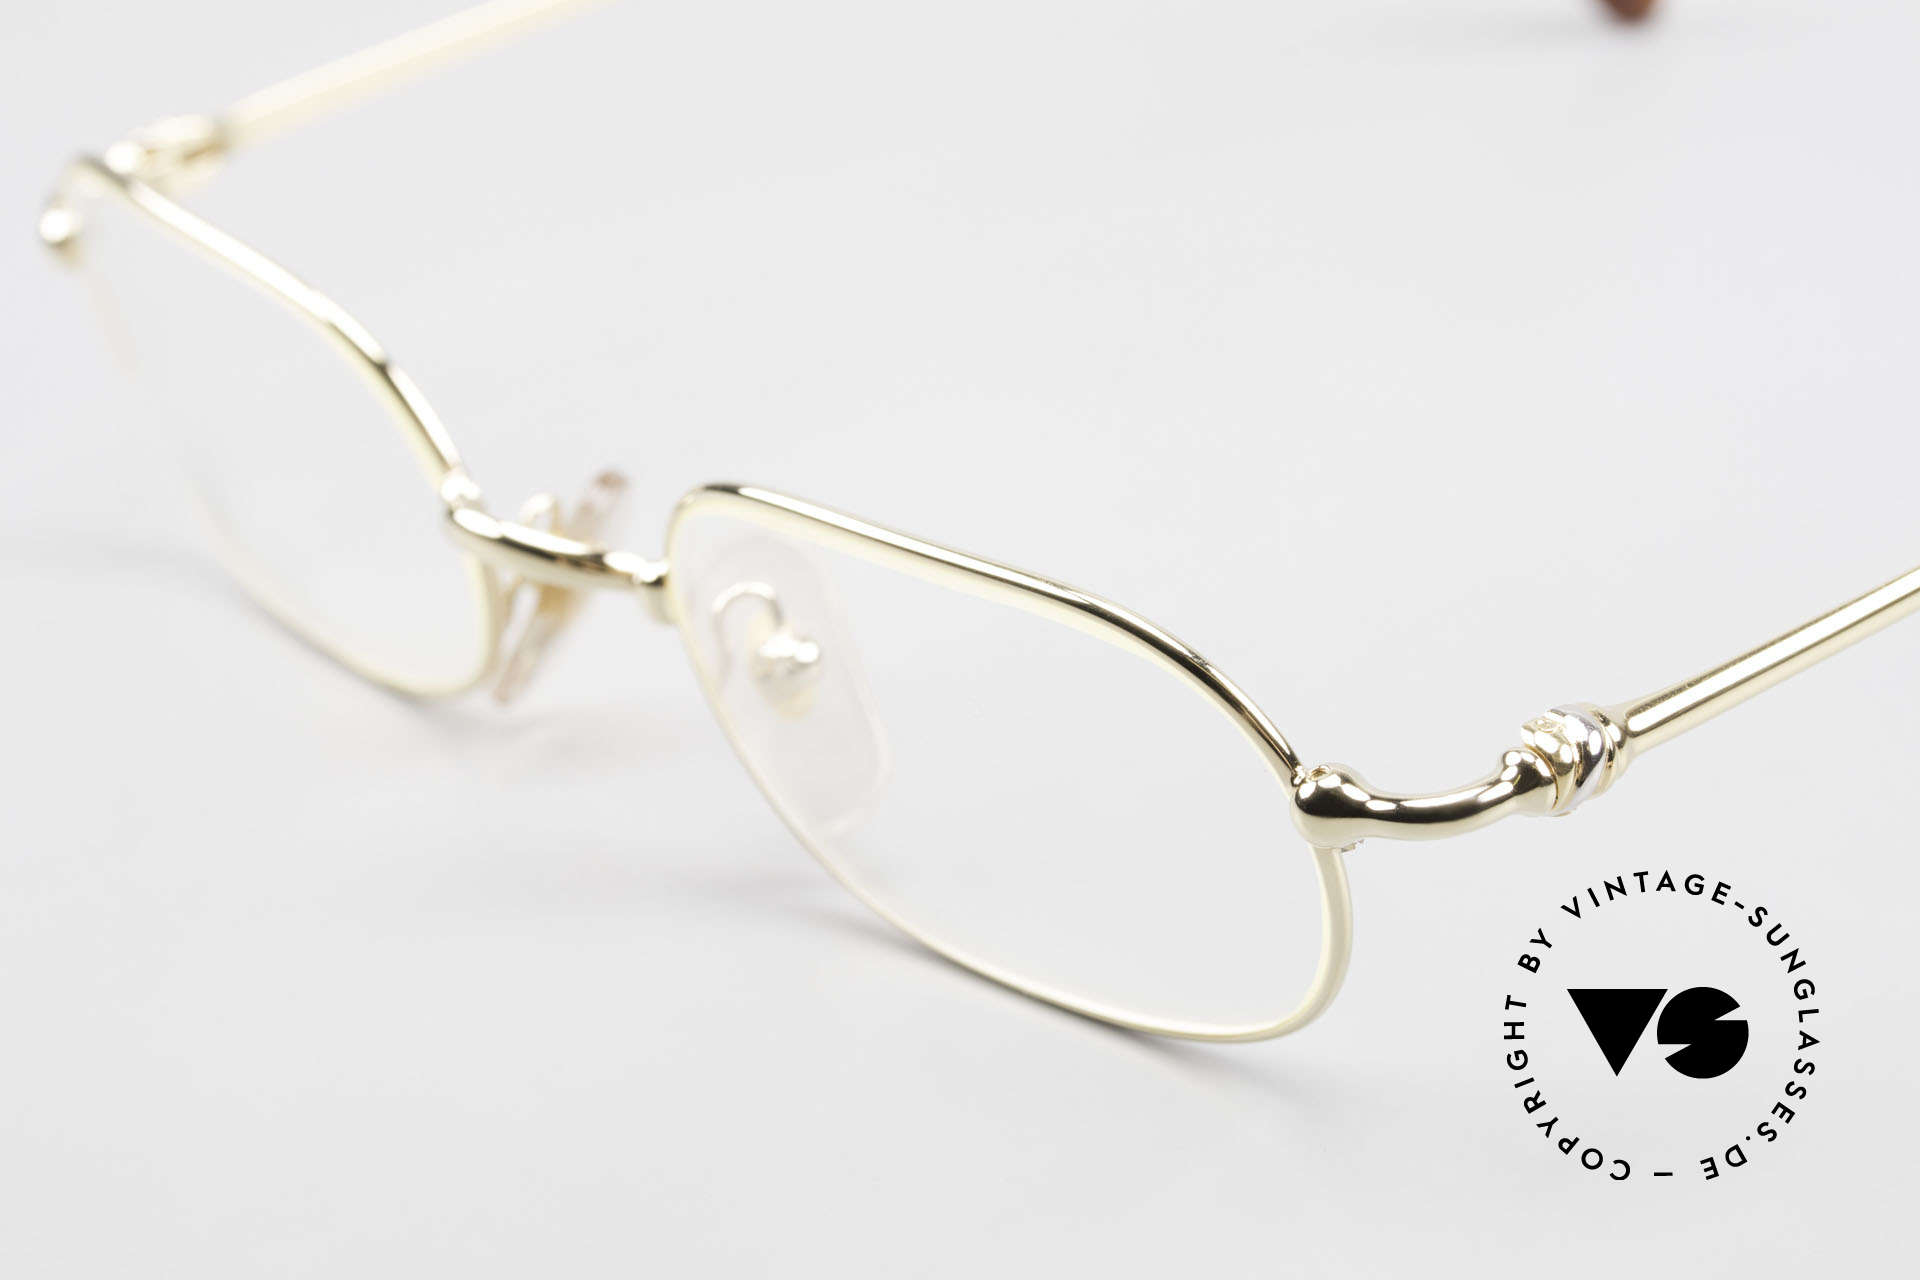 Cartier Orfy 90's Luxury Eyeglasses Square, precious 22ct gold-plated in size 50-21, 140: timeless, Made for Men and Women